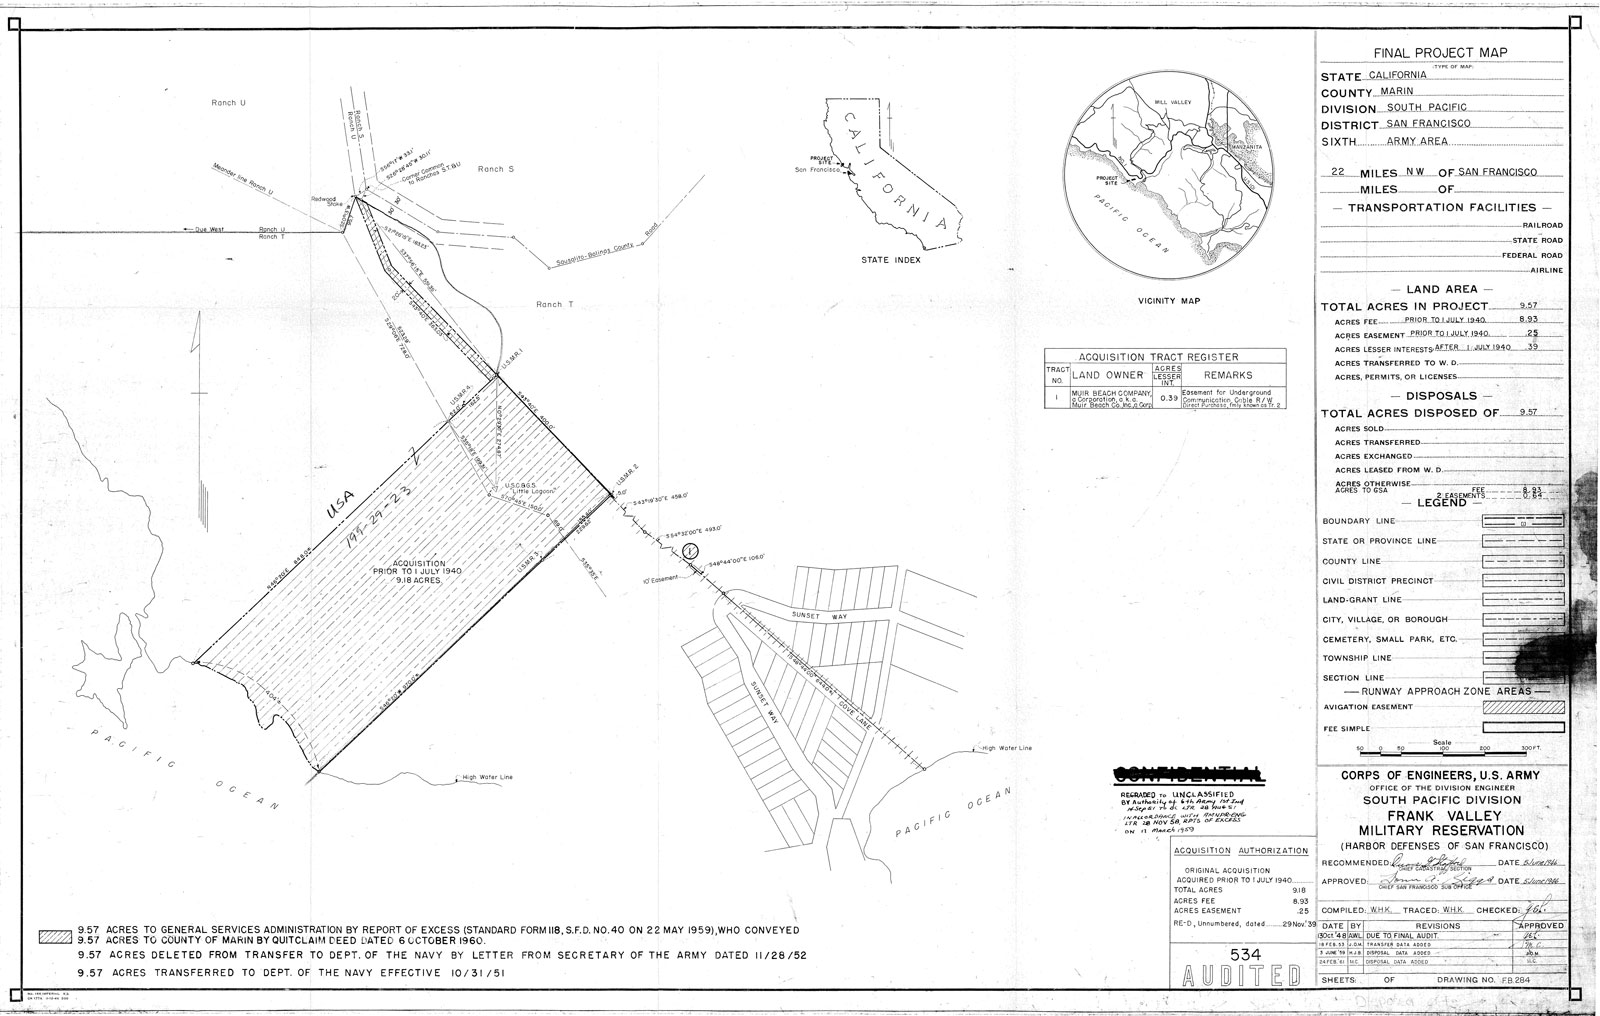 Frank Valley Military Reservation